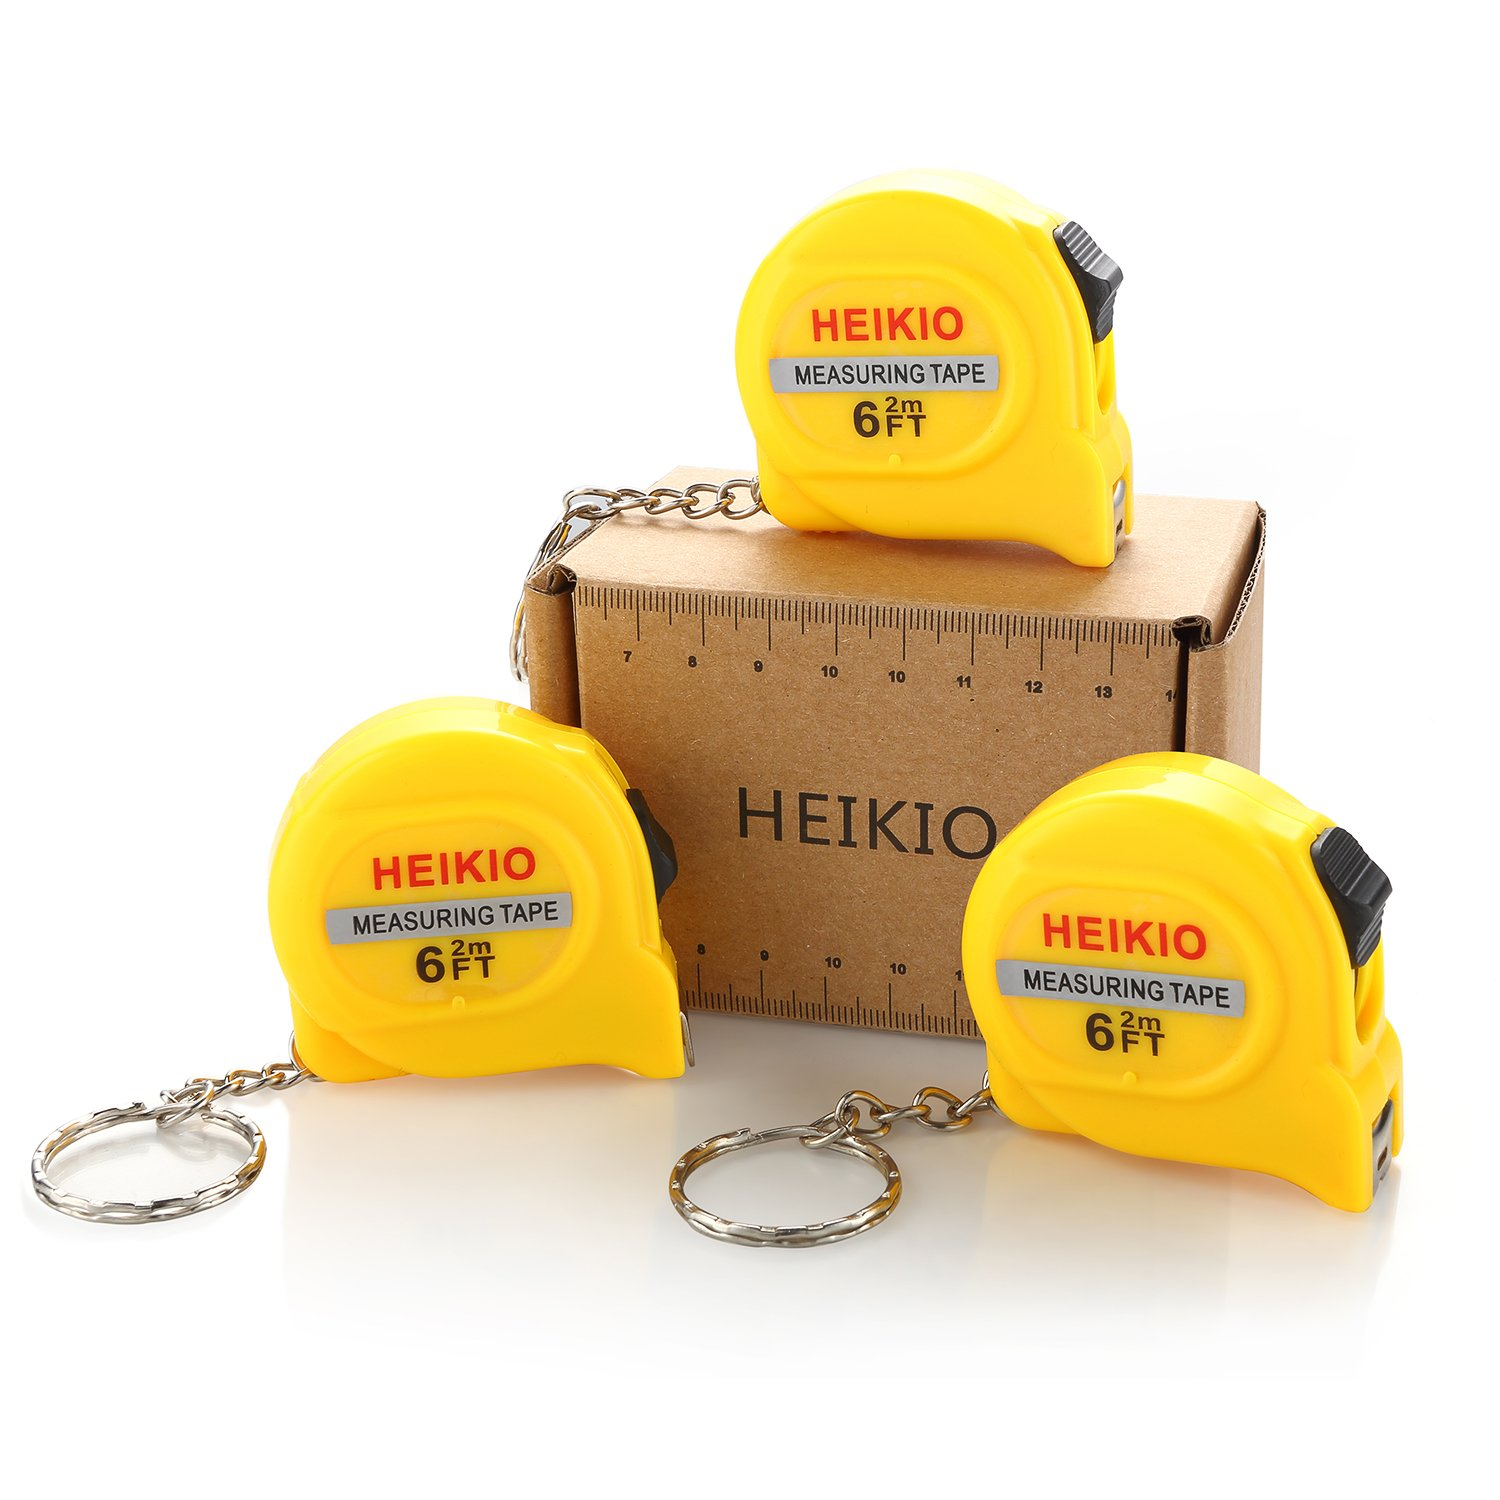 HEIKIO 3-Pack Measuring Tape 6FT/2M, with Belt Clip and Key Chain, Accurate Metric and Inch Scale, Clear Mark for DIY and Daily Family Use - Locking Mini Tape Measure 17001